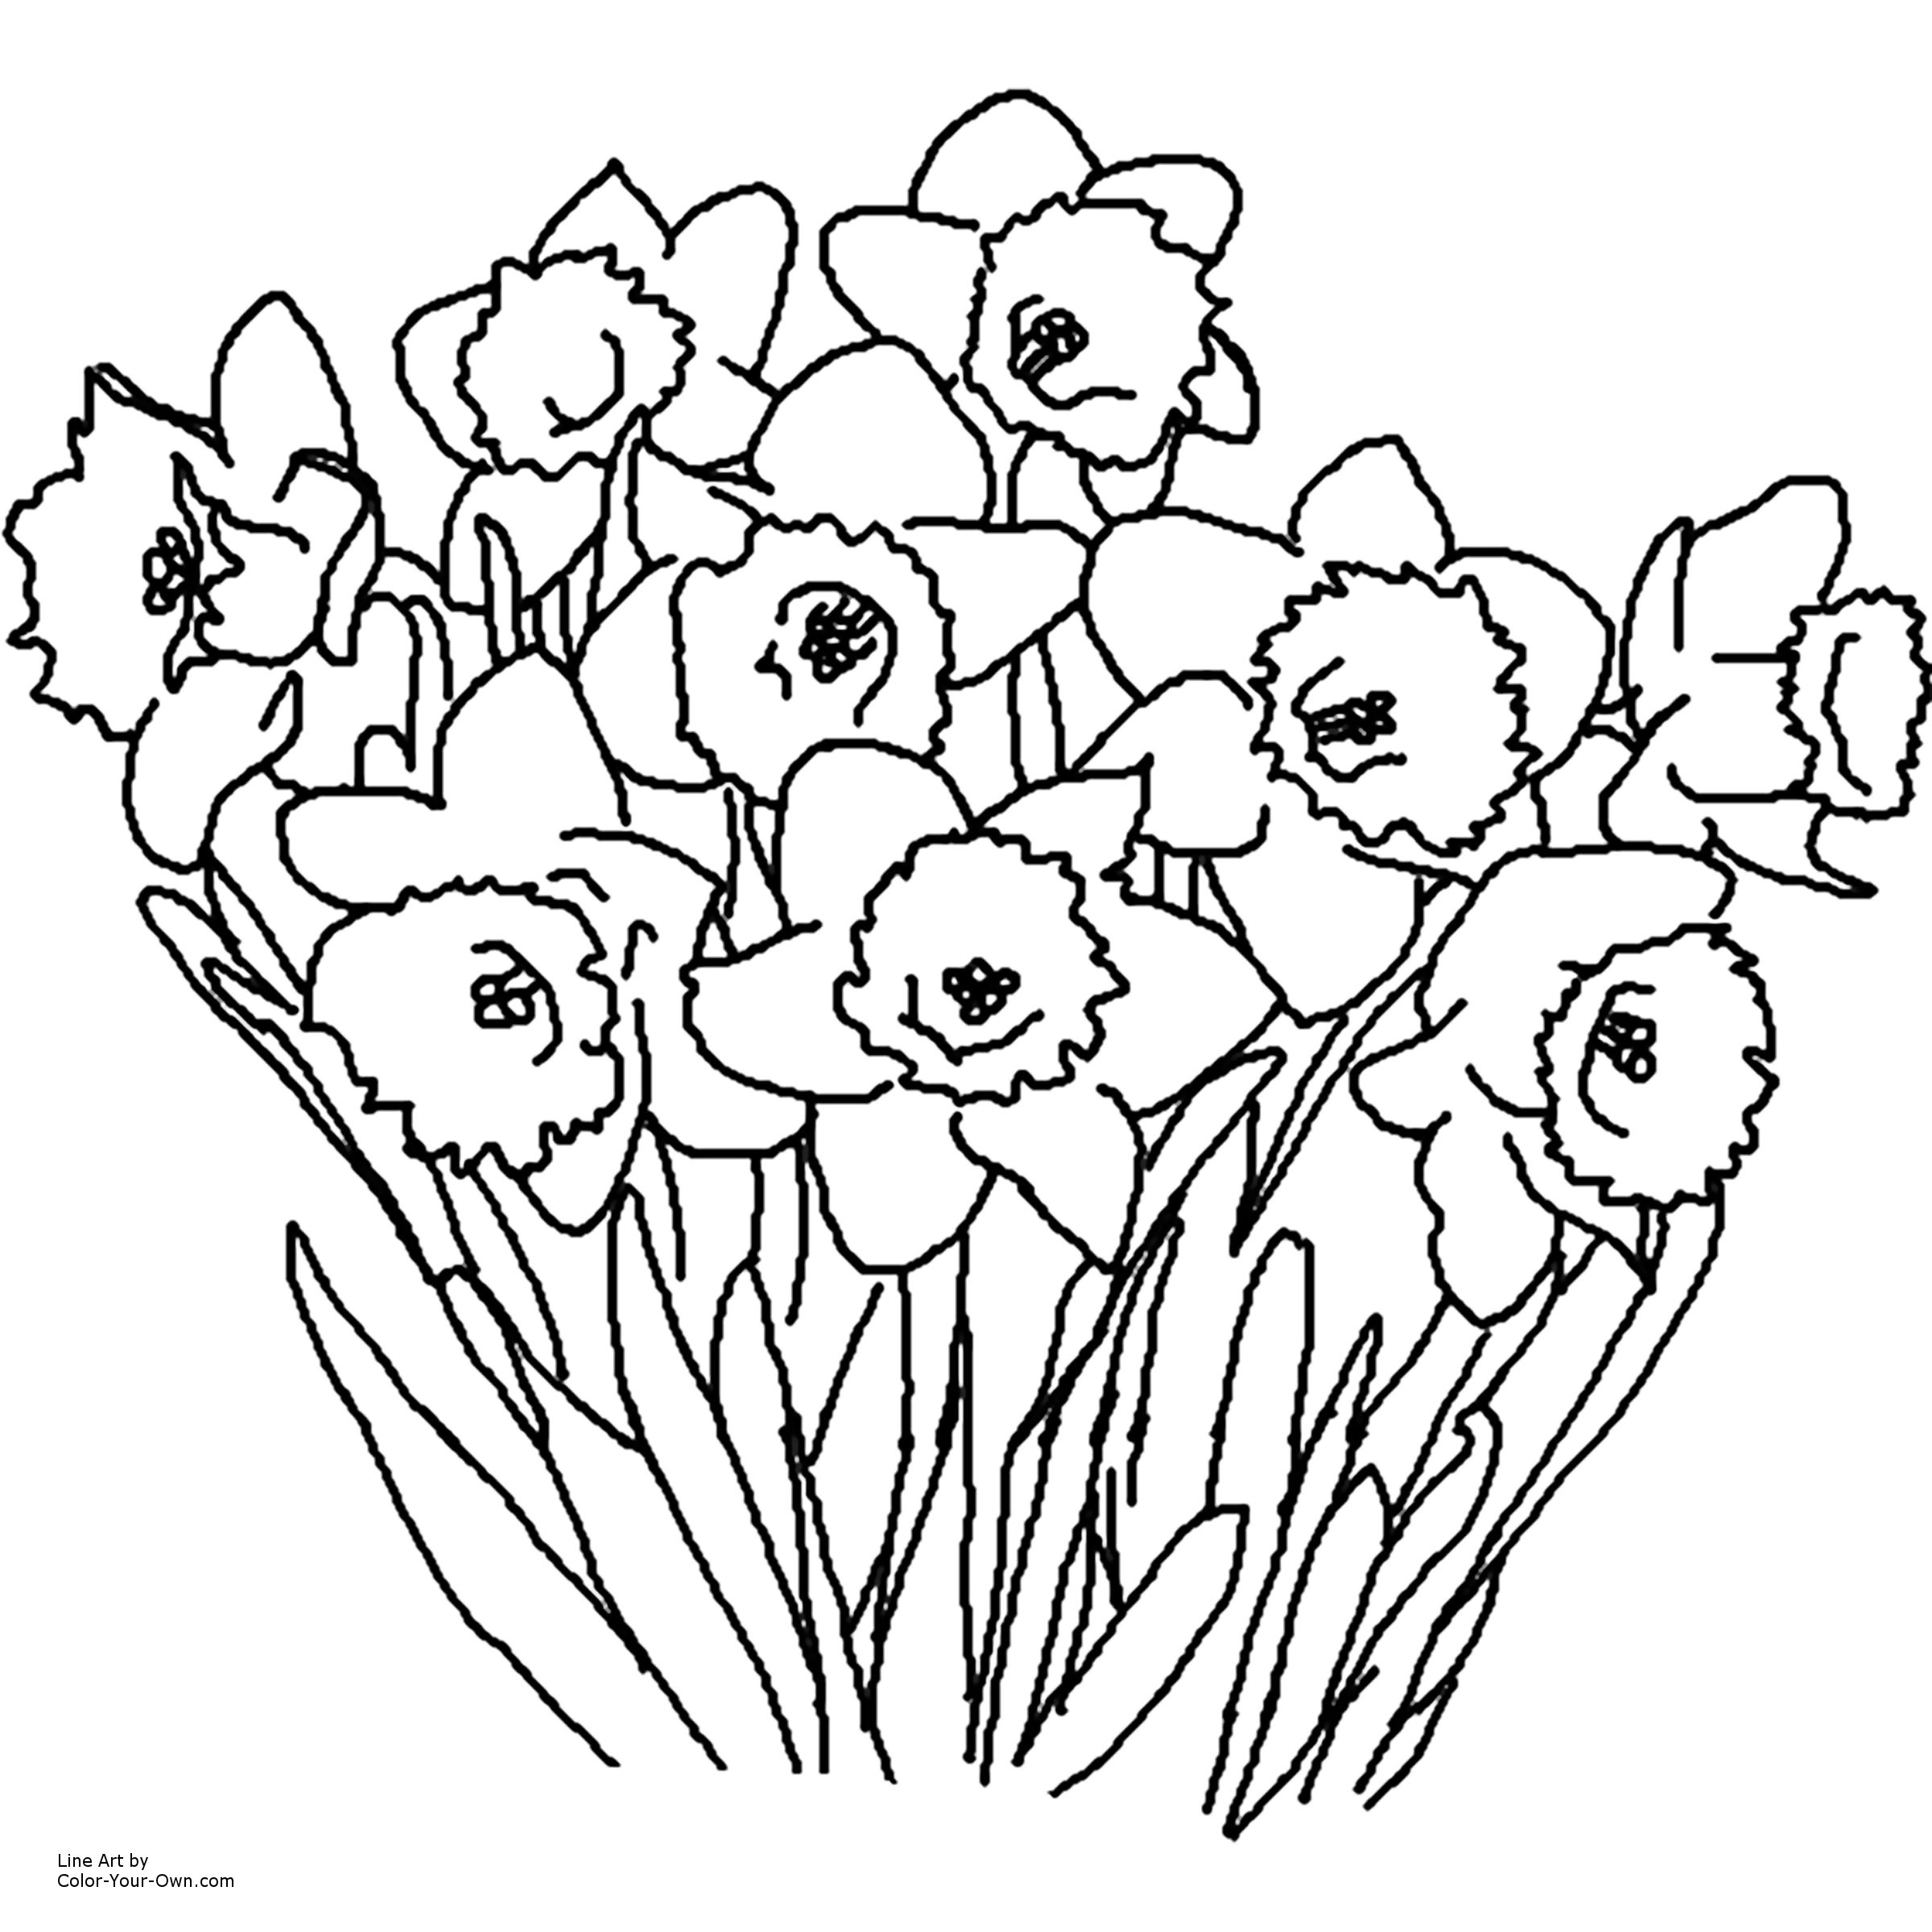 daffodils coloring pages Download-Printable Coloring Pages Flowers Daffodil Spring Flower Coloring Page Collection 7-p